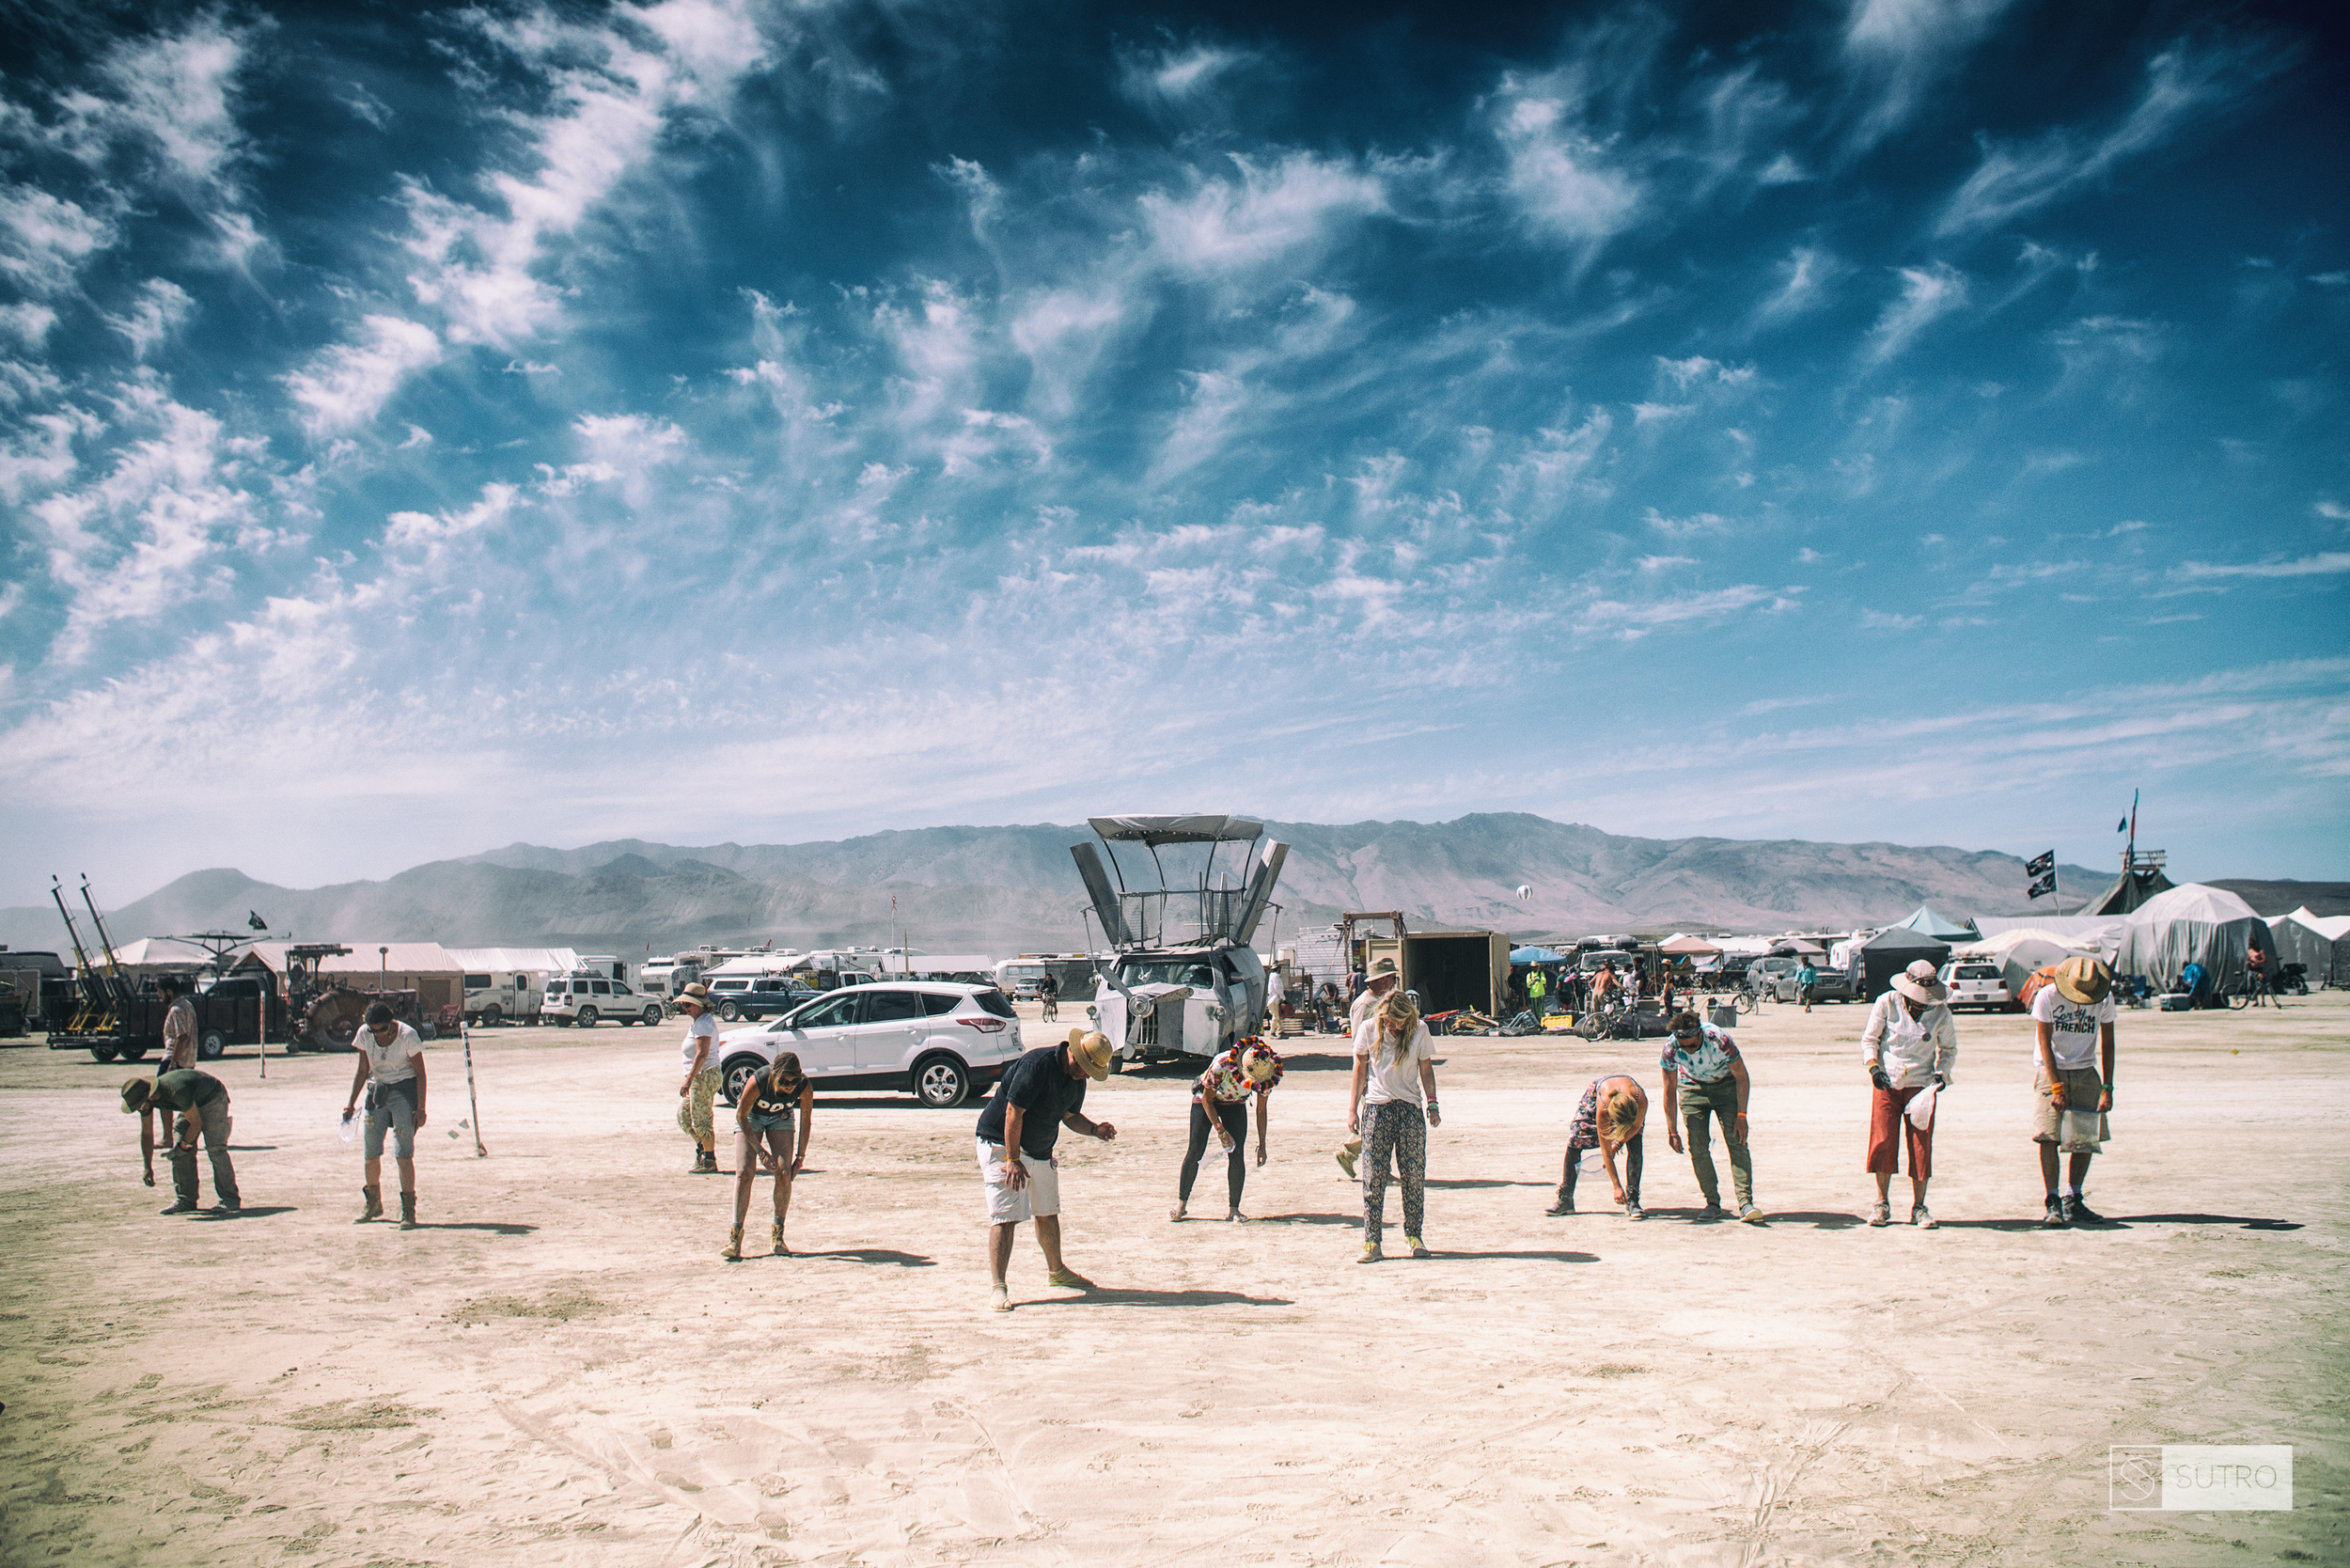 Members of FAFA camp do a final cleanup of the site before leaving the Playa at the end of the event.